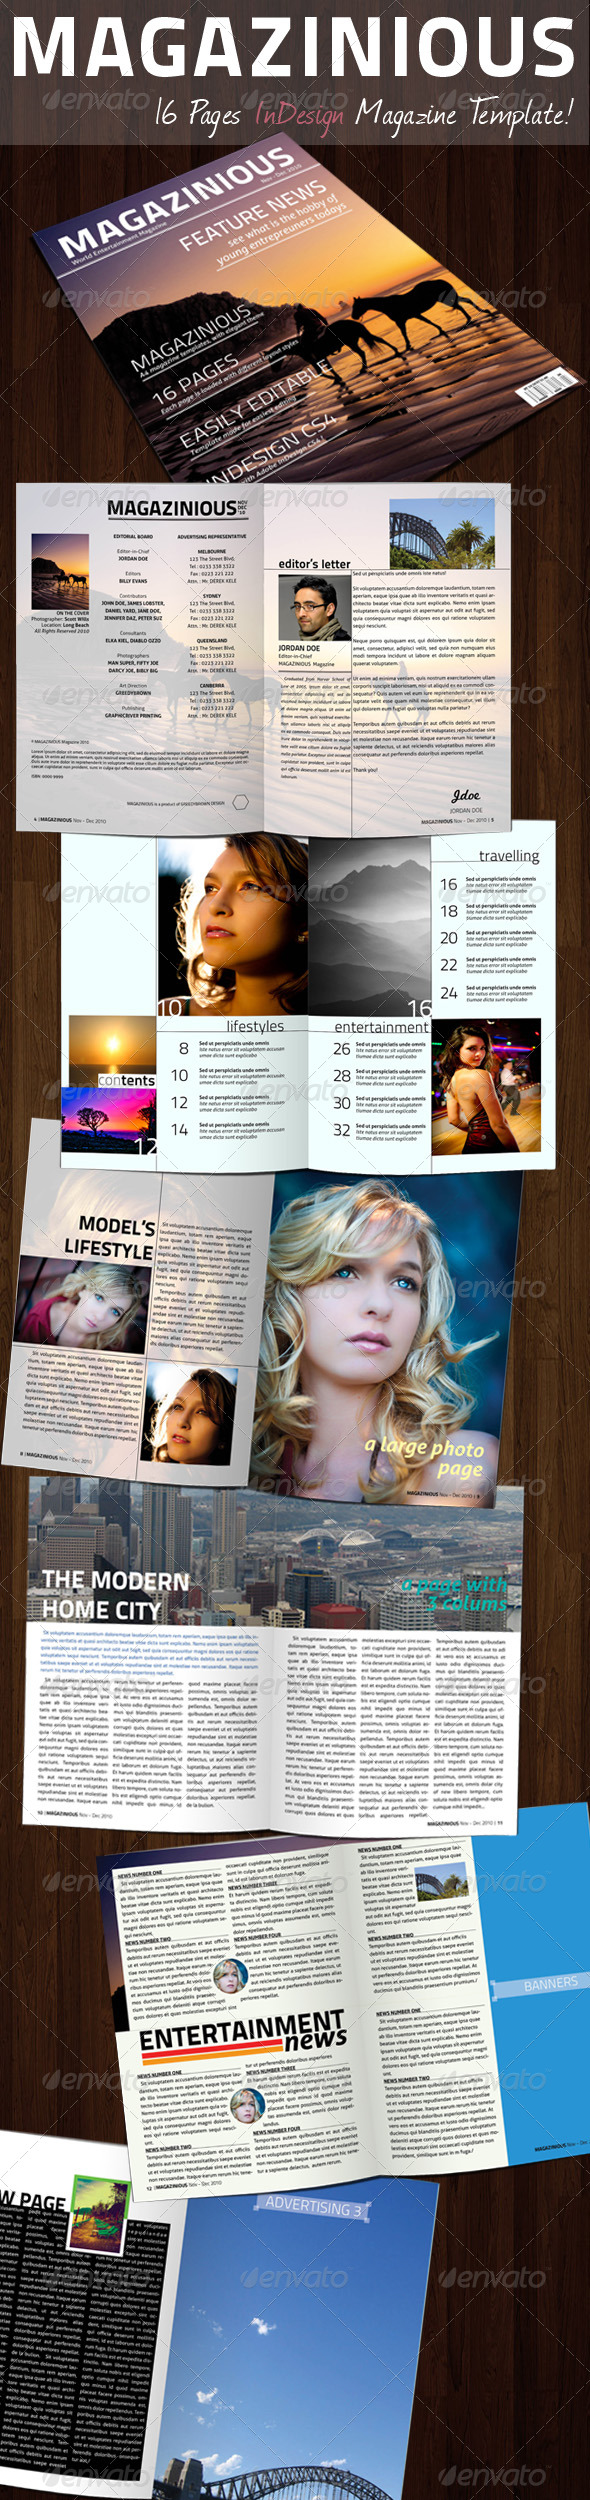 MAGAZINIOUS - InDesign Magazine Template - Magazines Print Templates